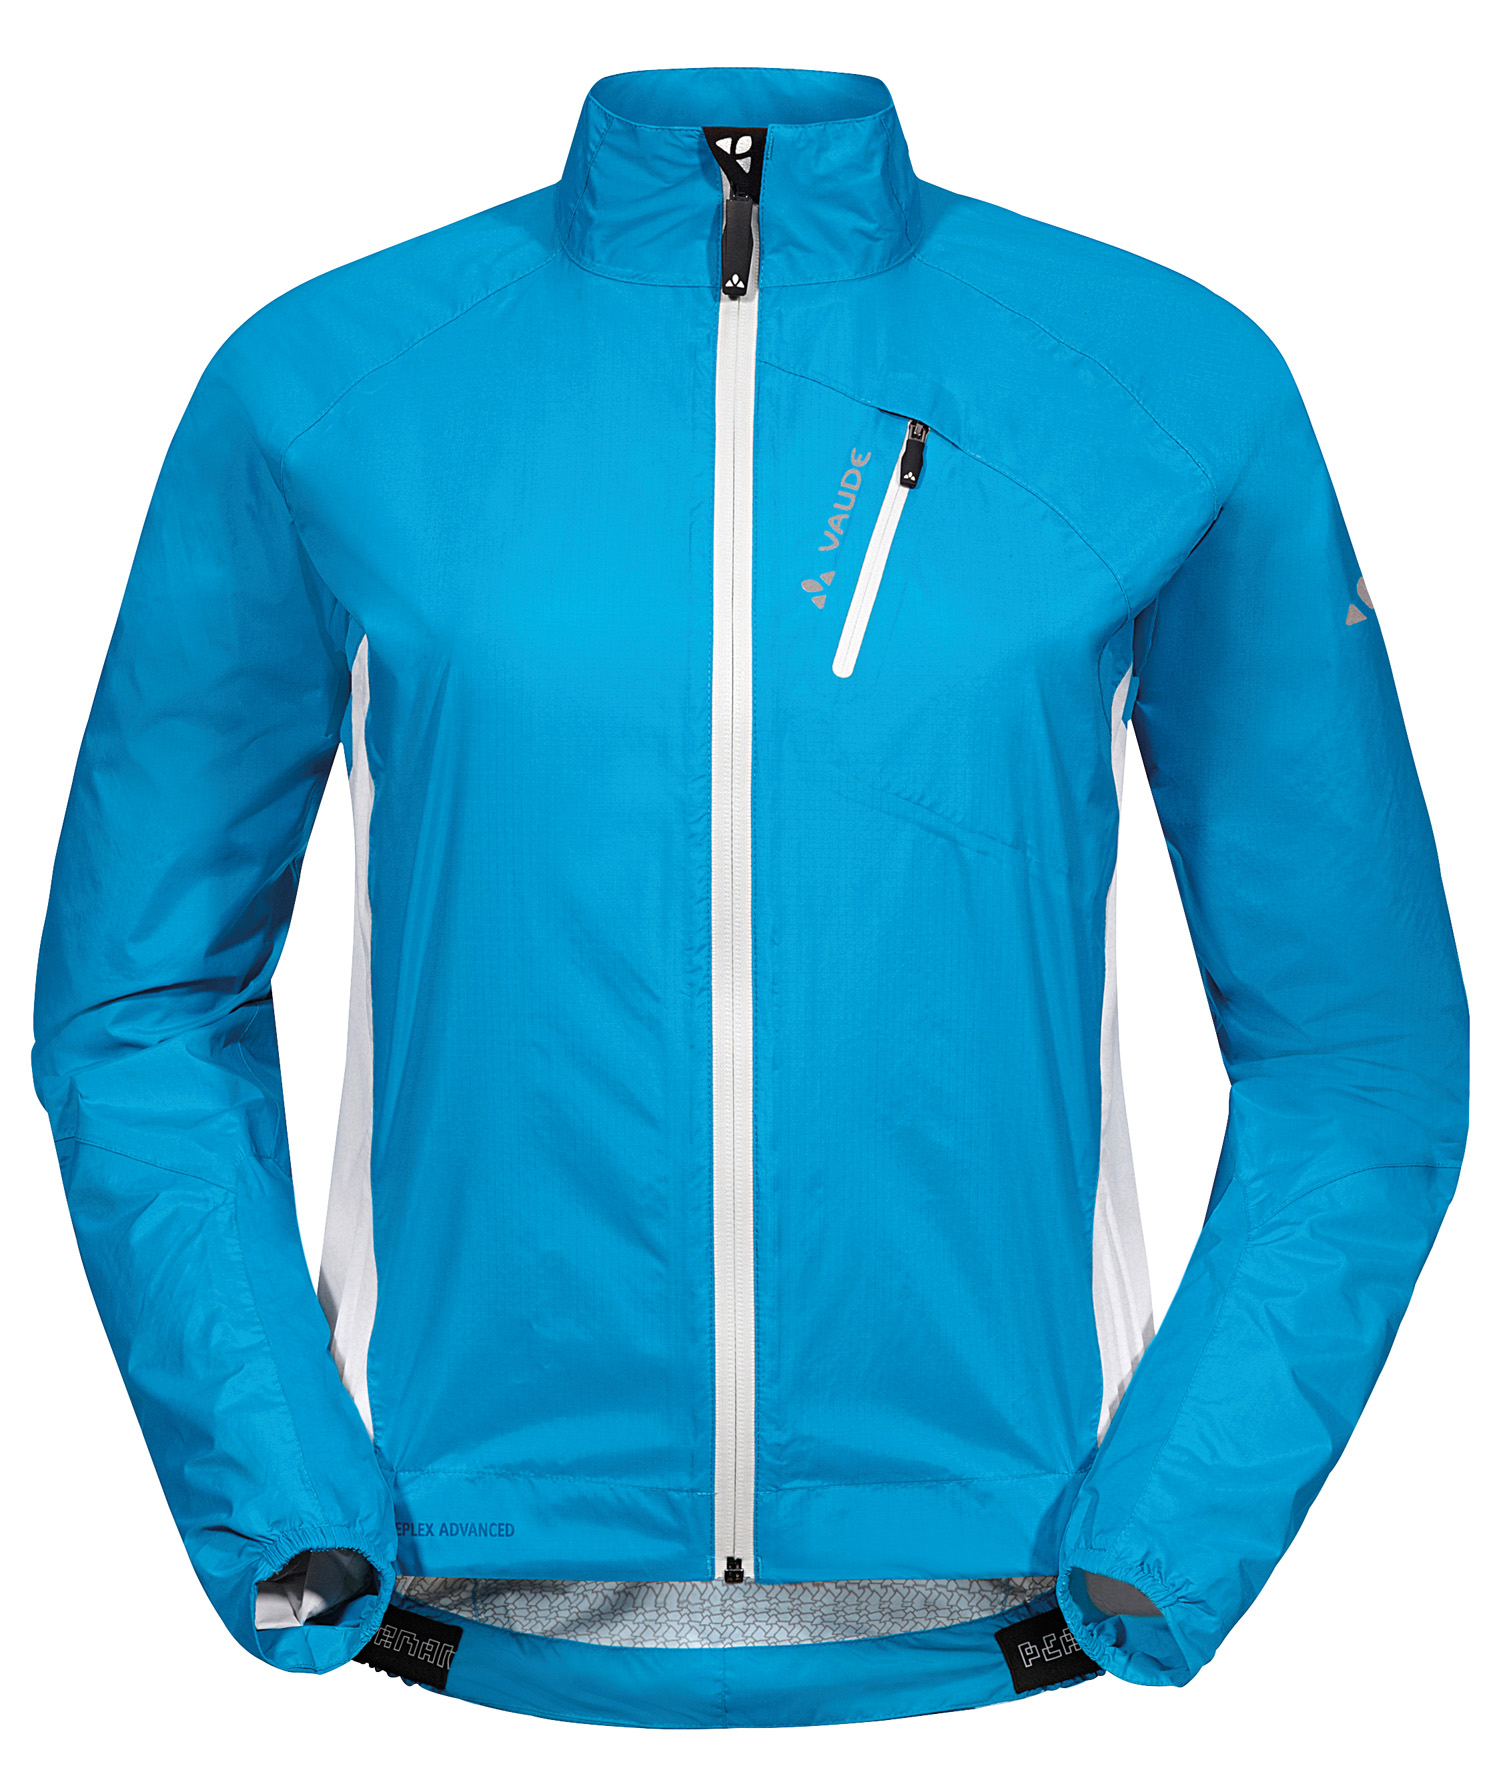 VAUDE Women´s Spray Jacket IV teal blue Größe 36 - schneider-sports